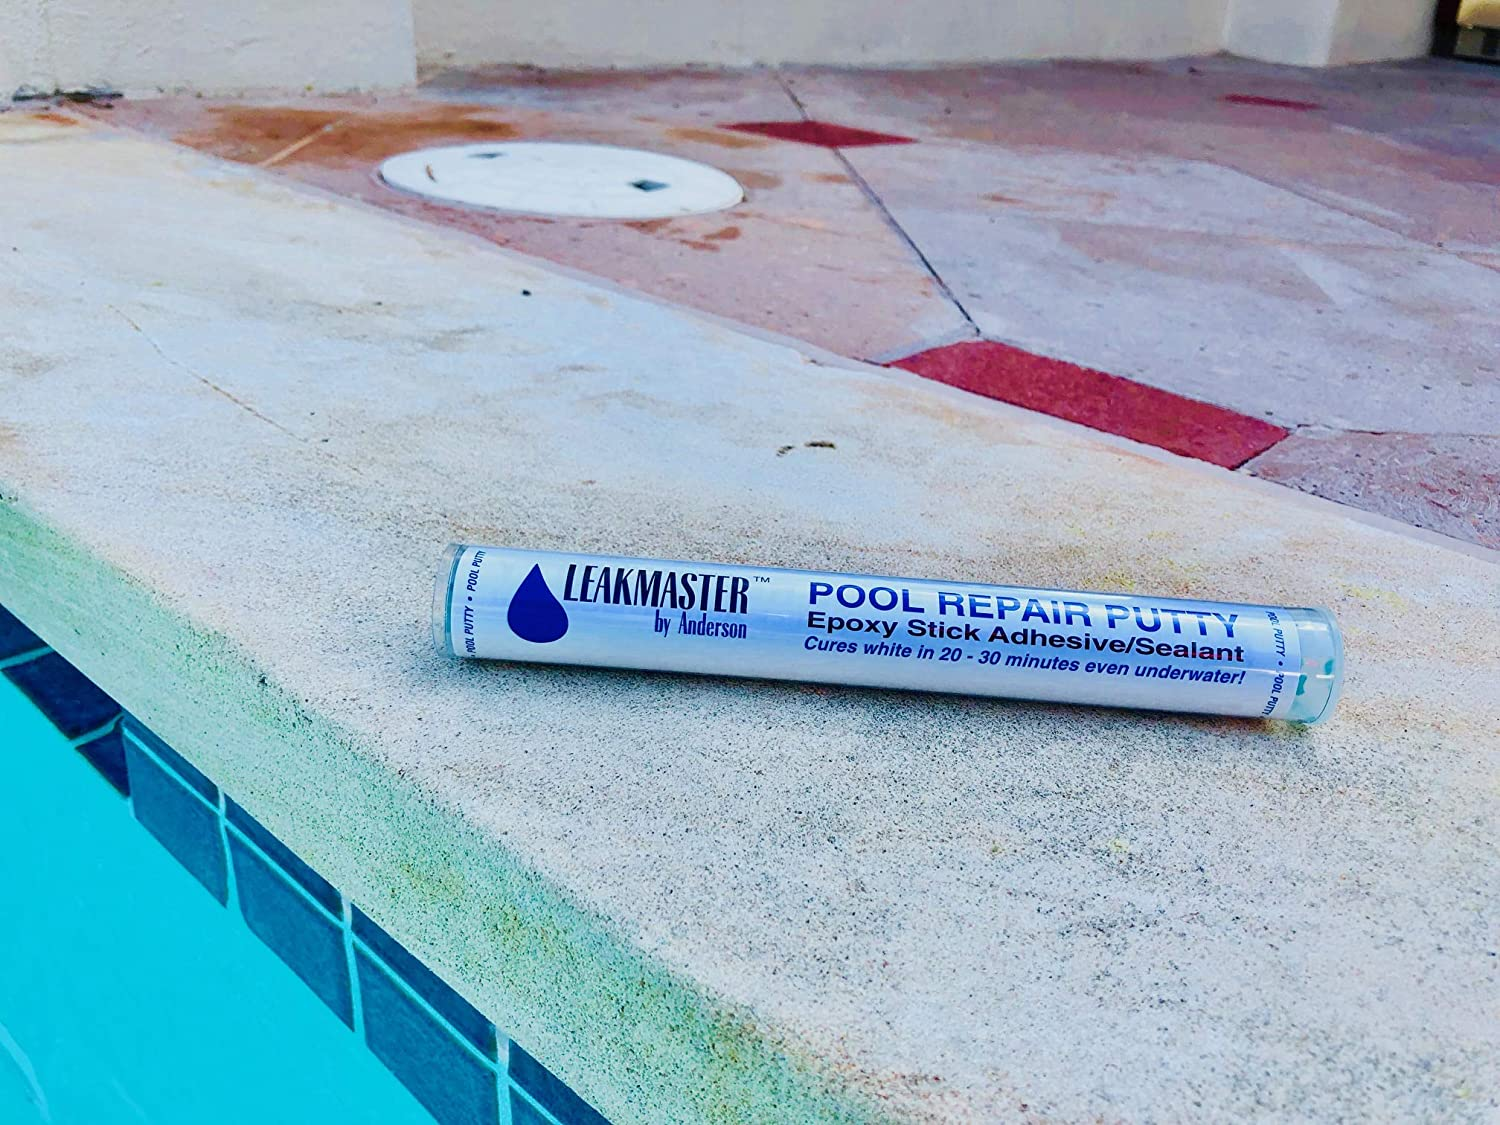 Amazon.com : Leakmaster Epoxy Stick Pool Repair Putty PP701 ...